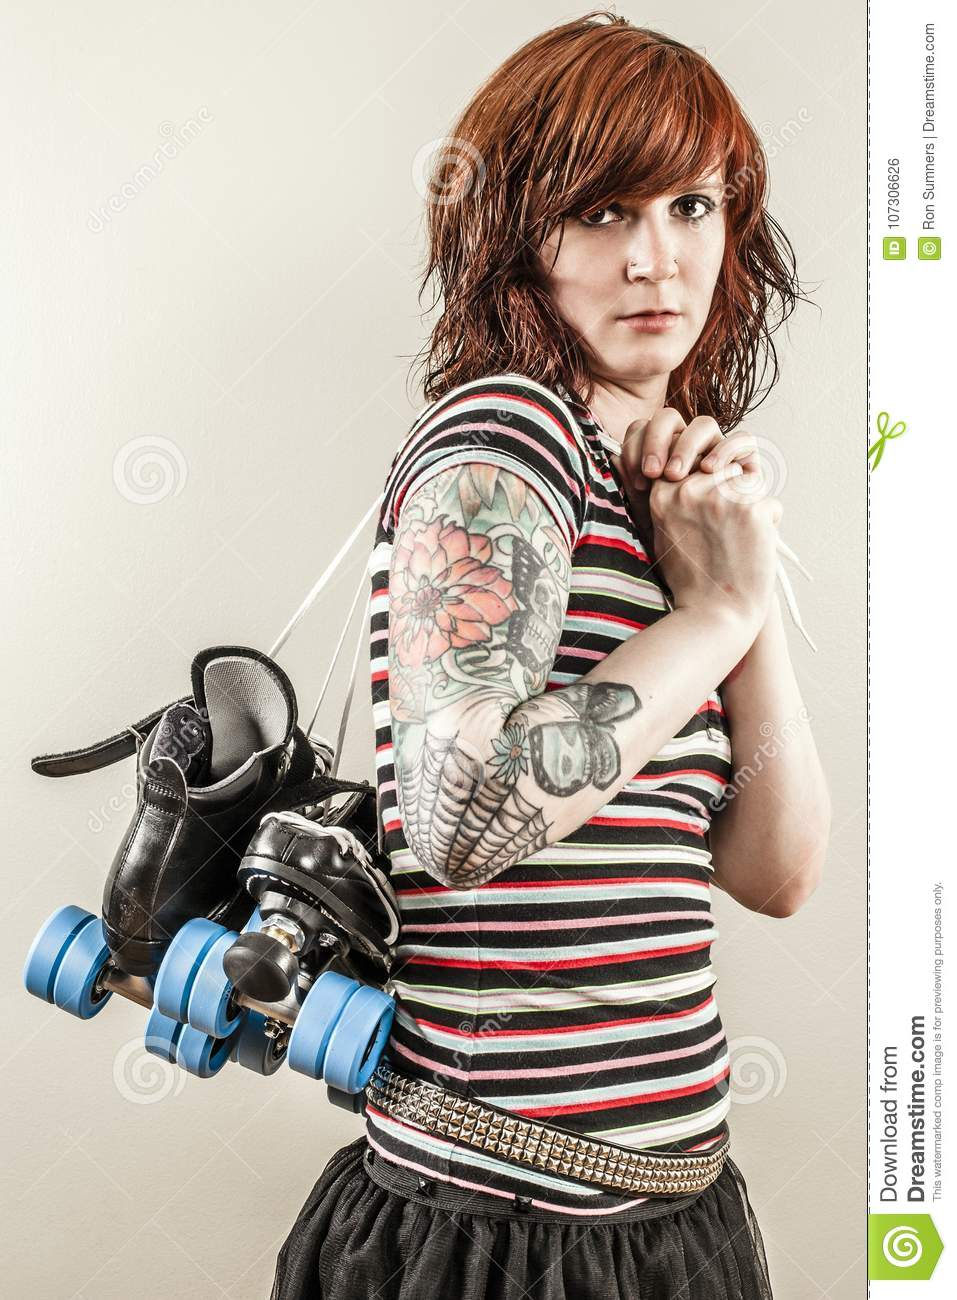 Beautiful roller derby woman holding skates